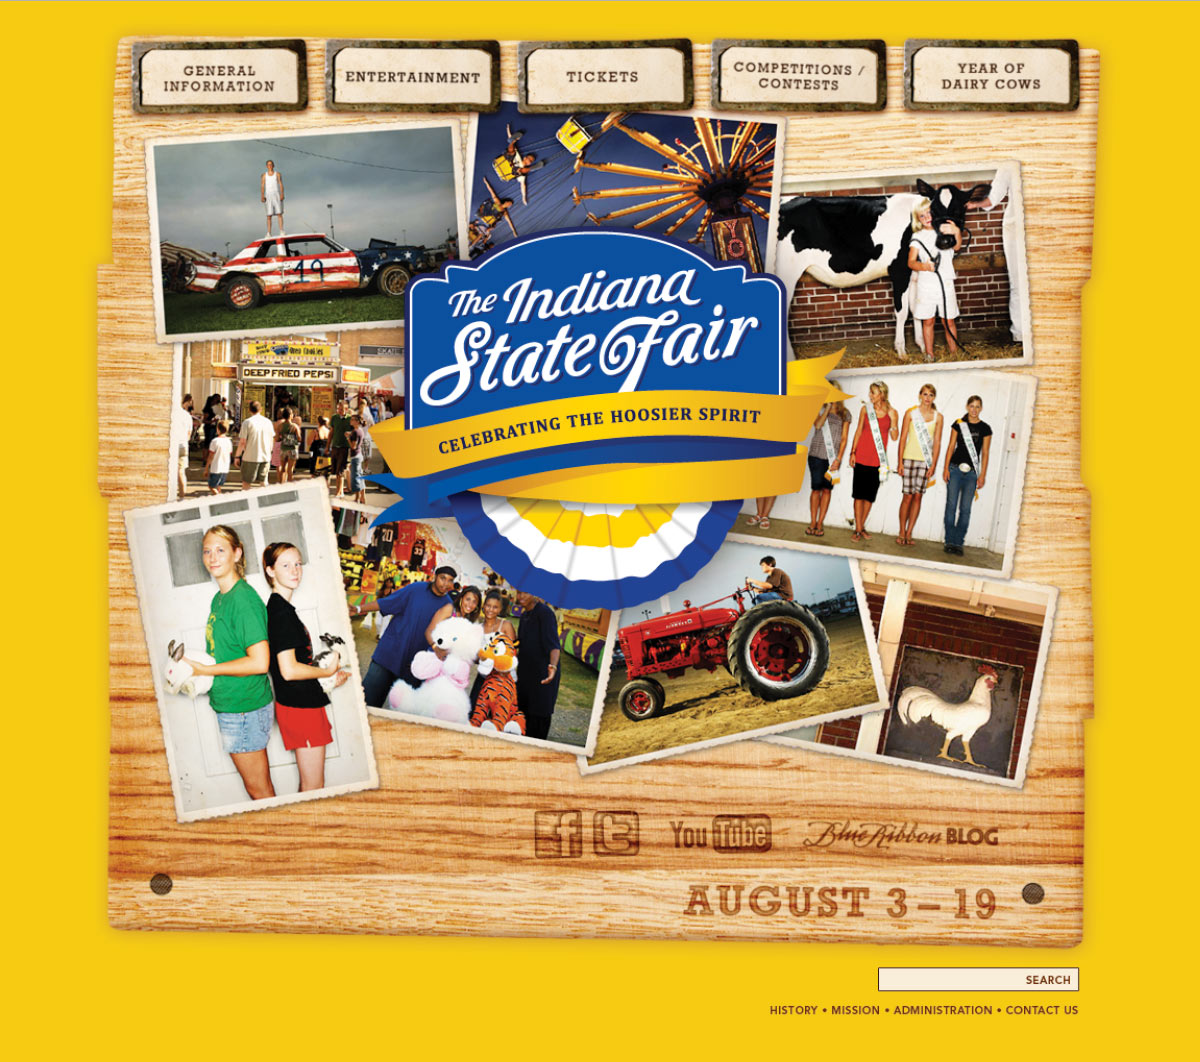 Indiana State Fair: 2012 Website